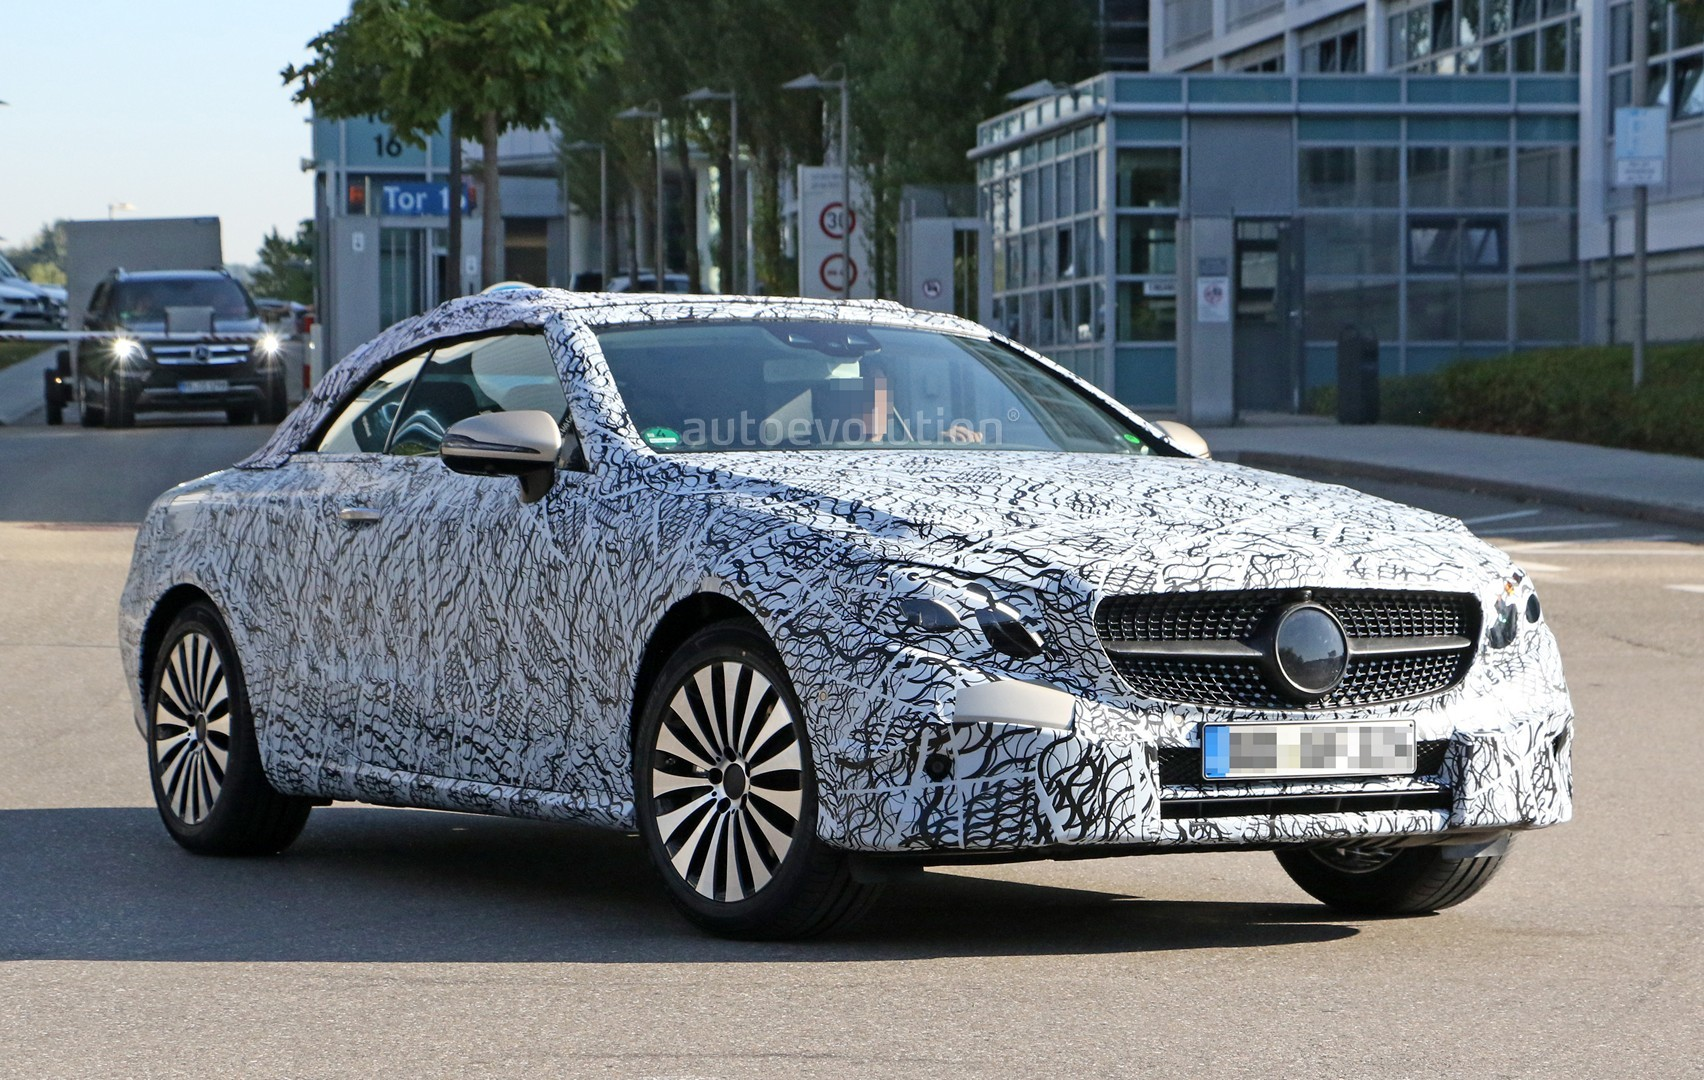 spyshots 2018 mercedes benz e class cabriolet shows its grille autoevolution. Black Bedroom Furniture Sets. Home Design Ideas